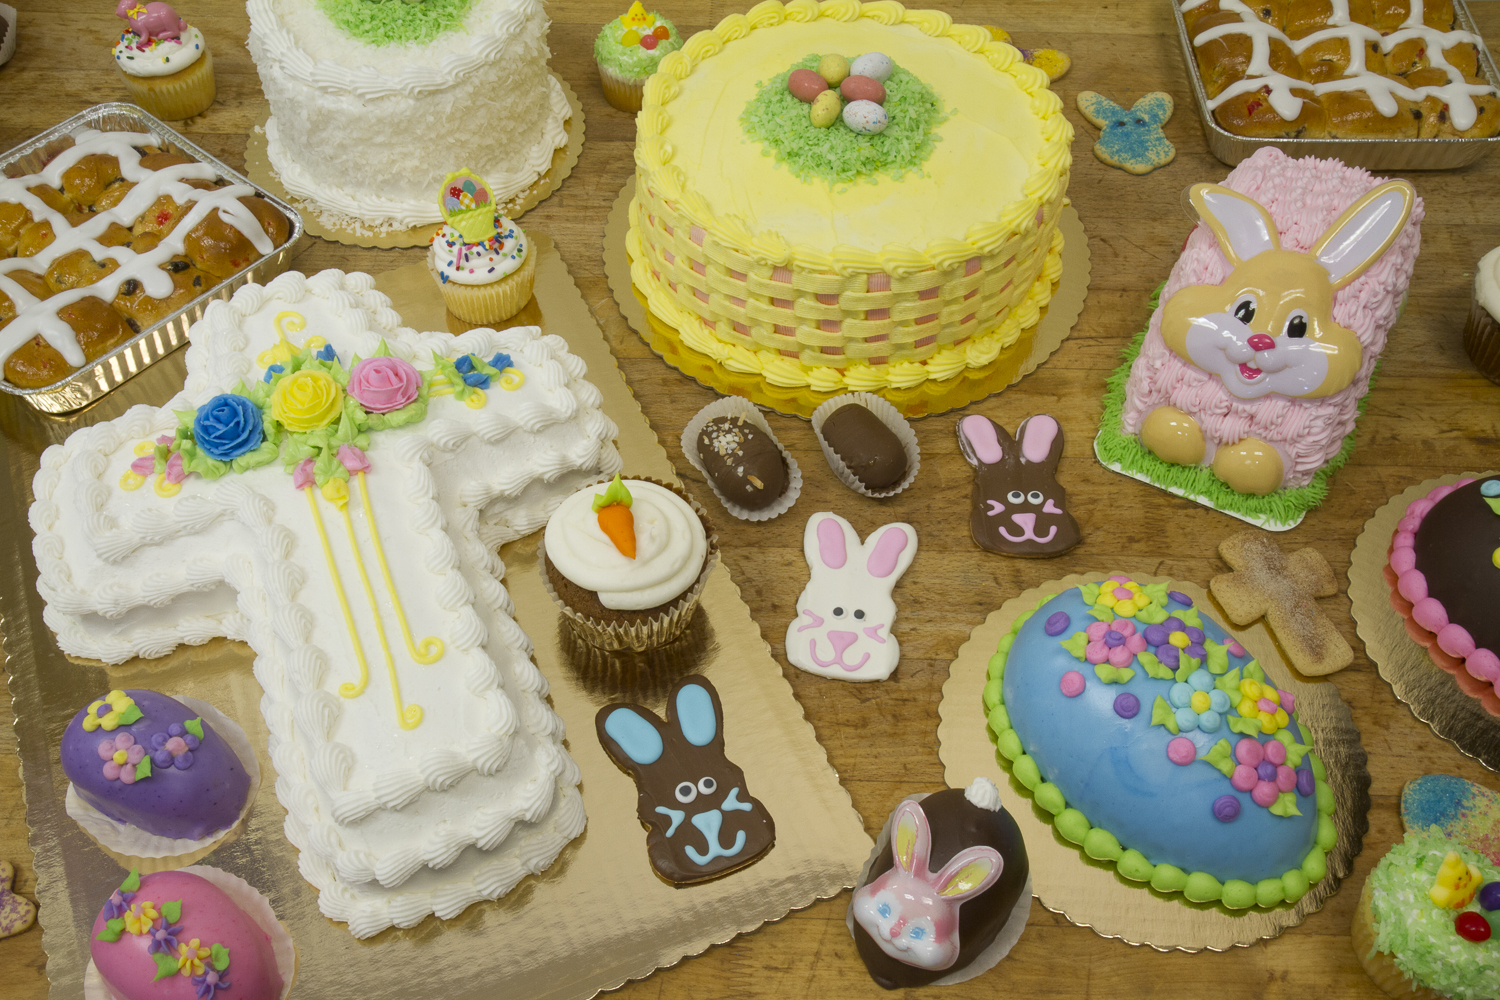 Montgomery Bakehouse Easter Cakes and Treats | Montgomery Bakehouse